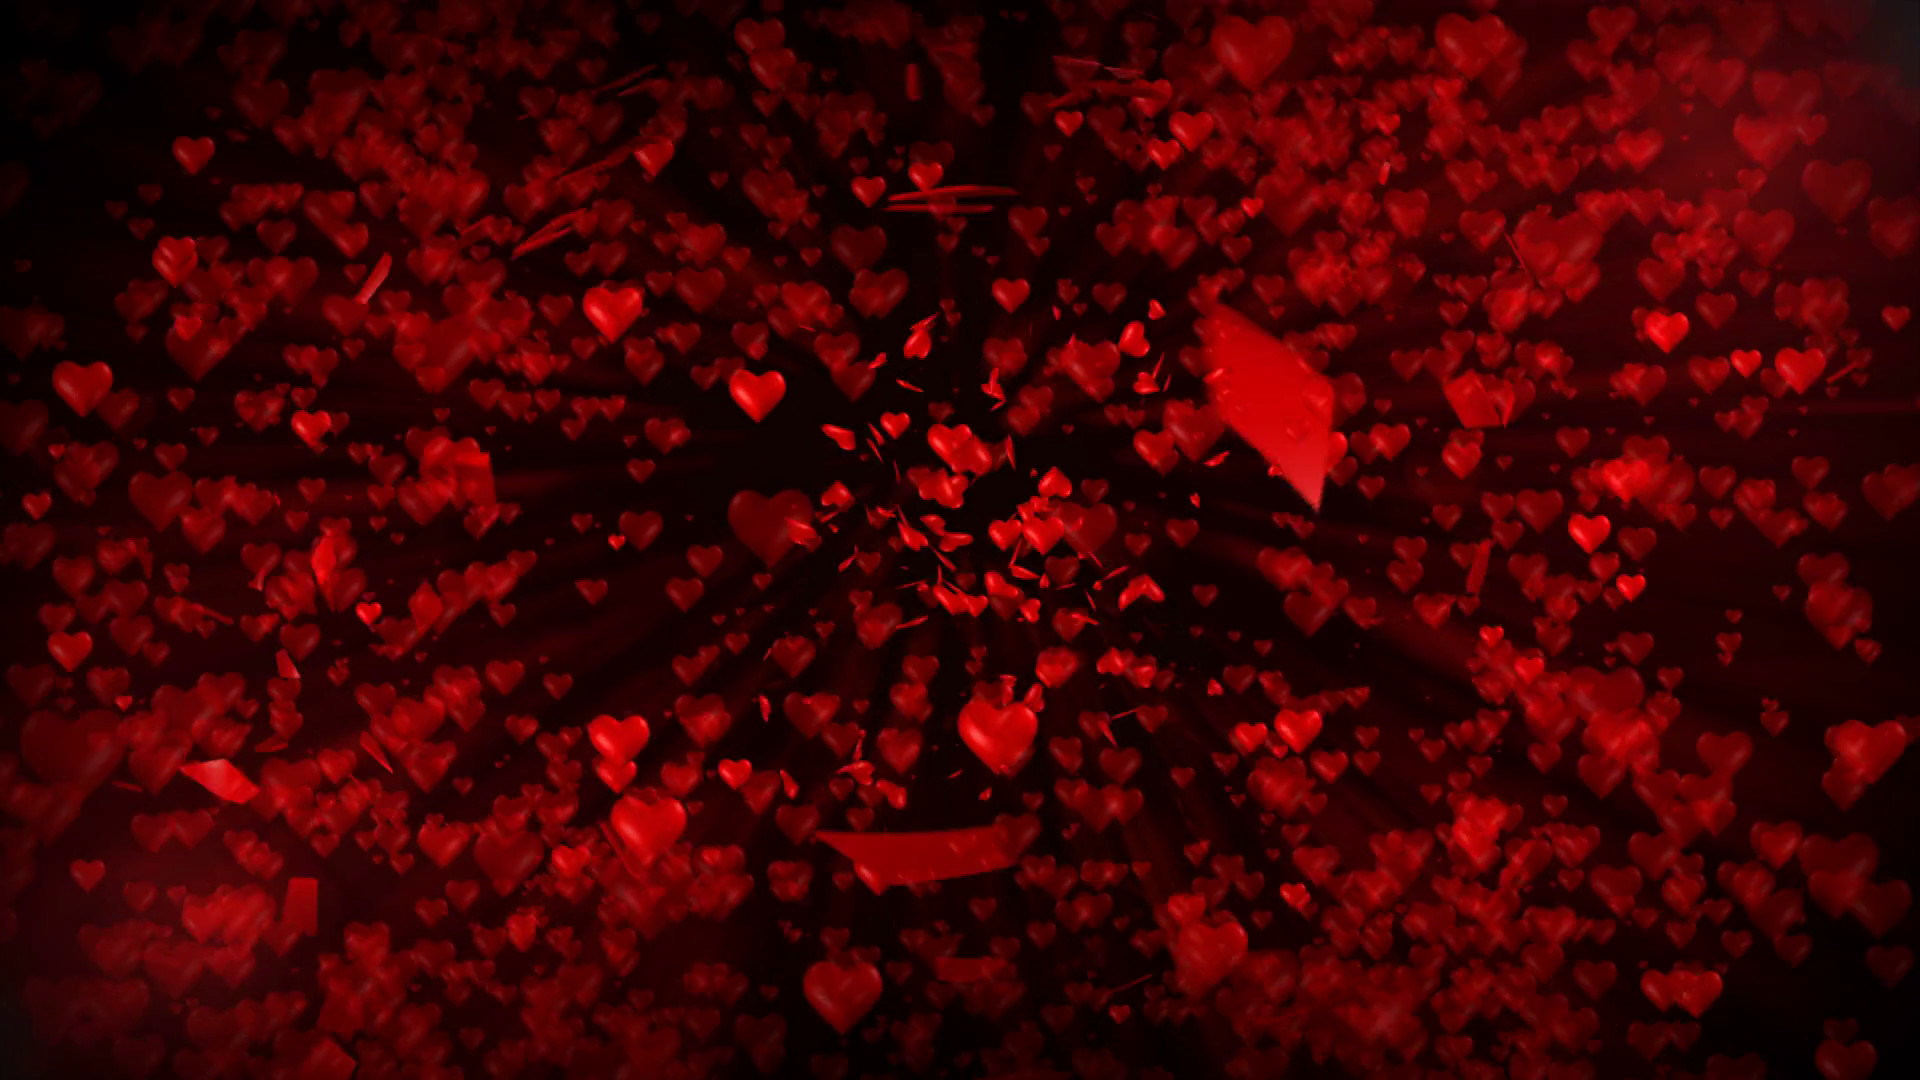 Red Heart Backgrounds 50 Pictures